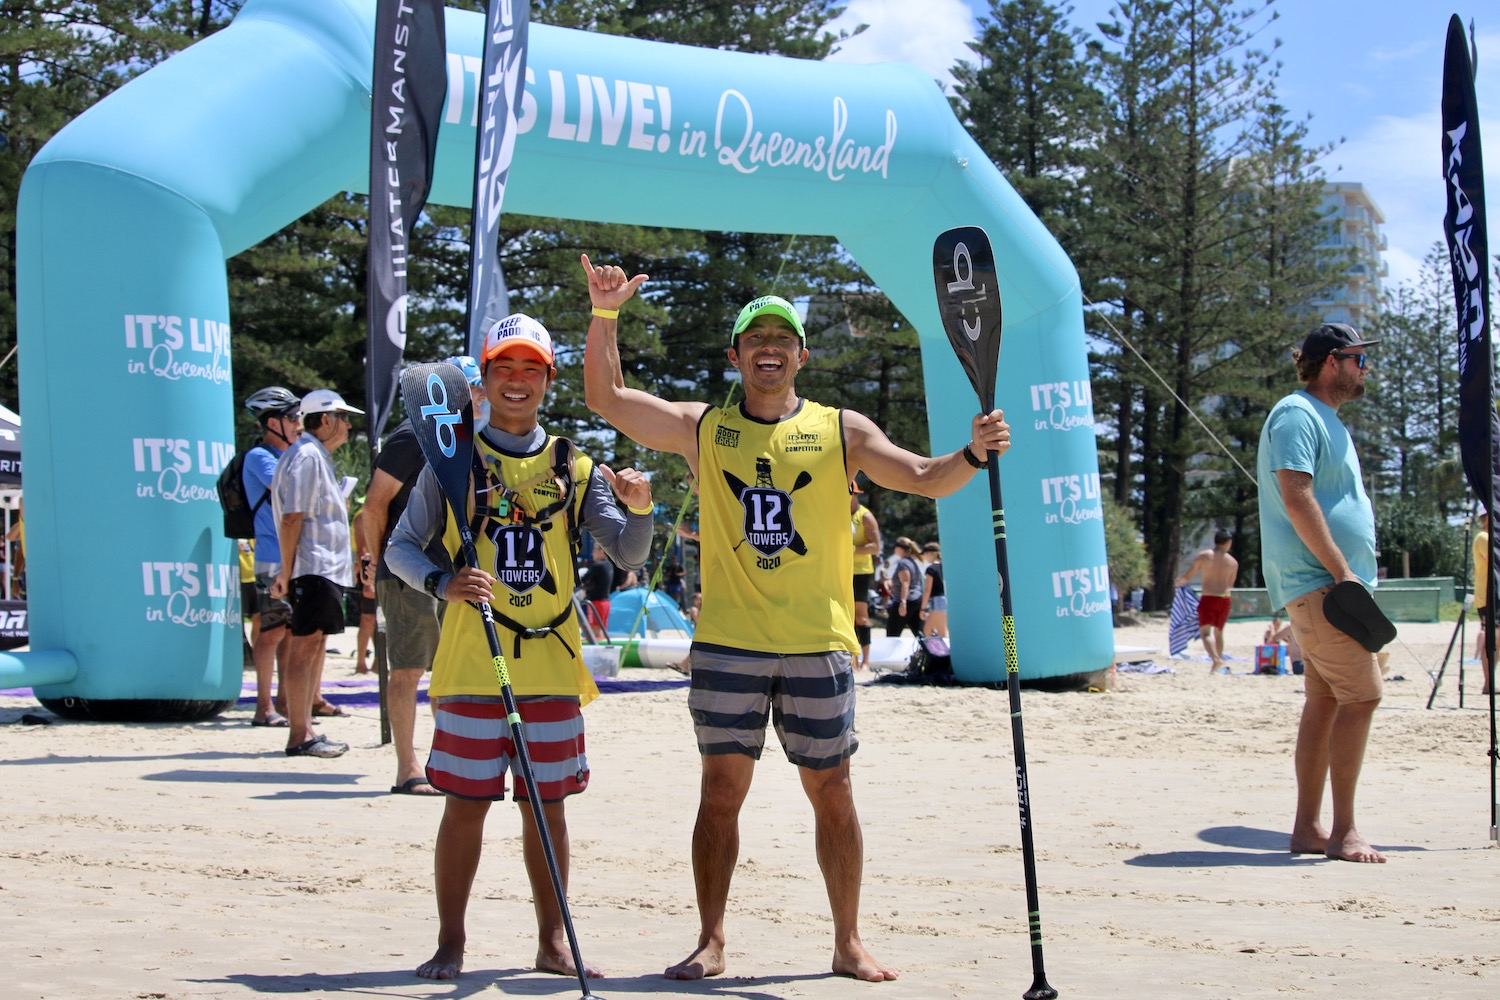 12Towers世界選手権/AUS、親子揃ってエイジ部門で優勝